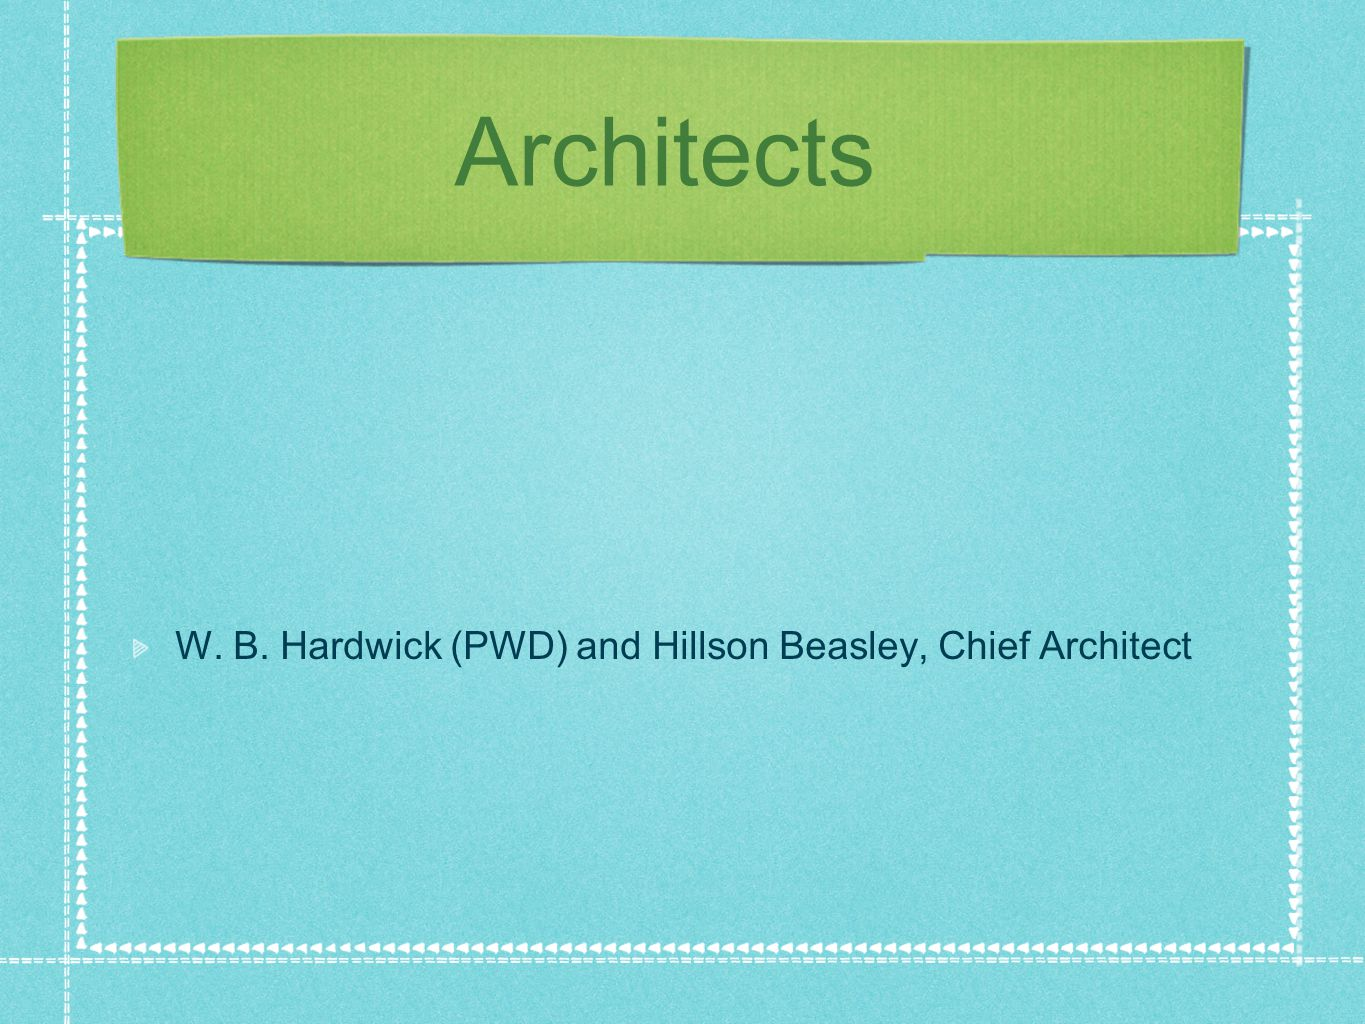 Architects W. B. Hardwick (PWD) and Hillson Beasley, Chief Architect